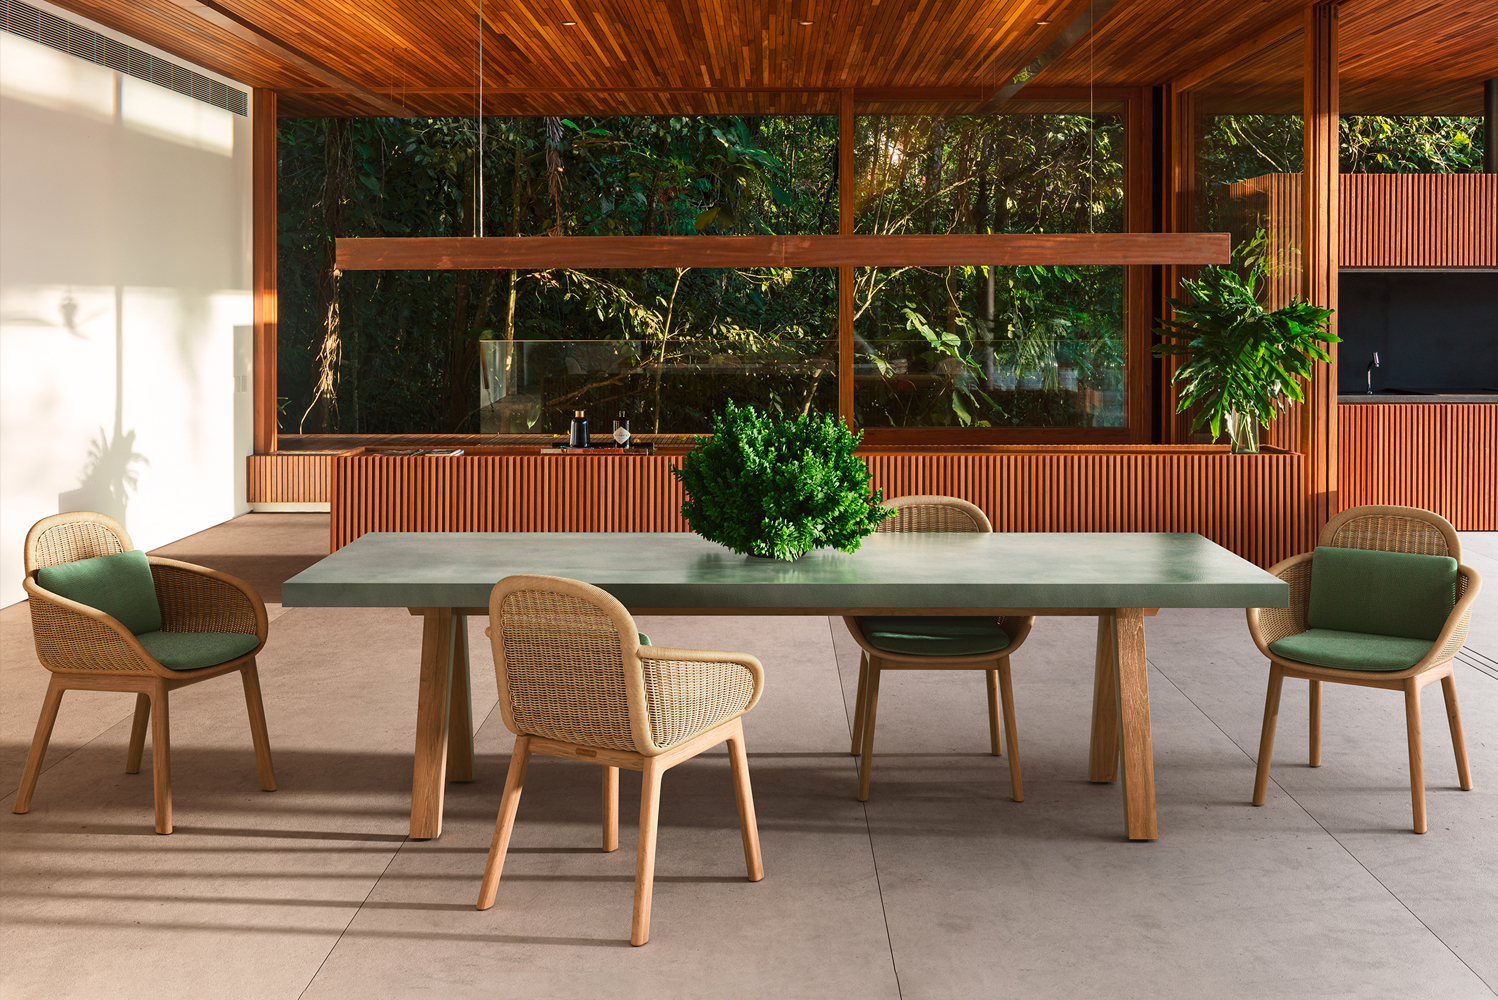 Vimini is a new collection of outdoor furniture.